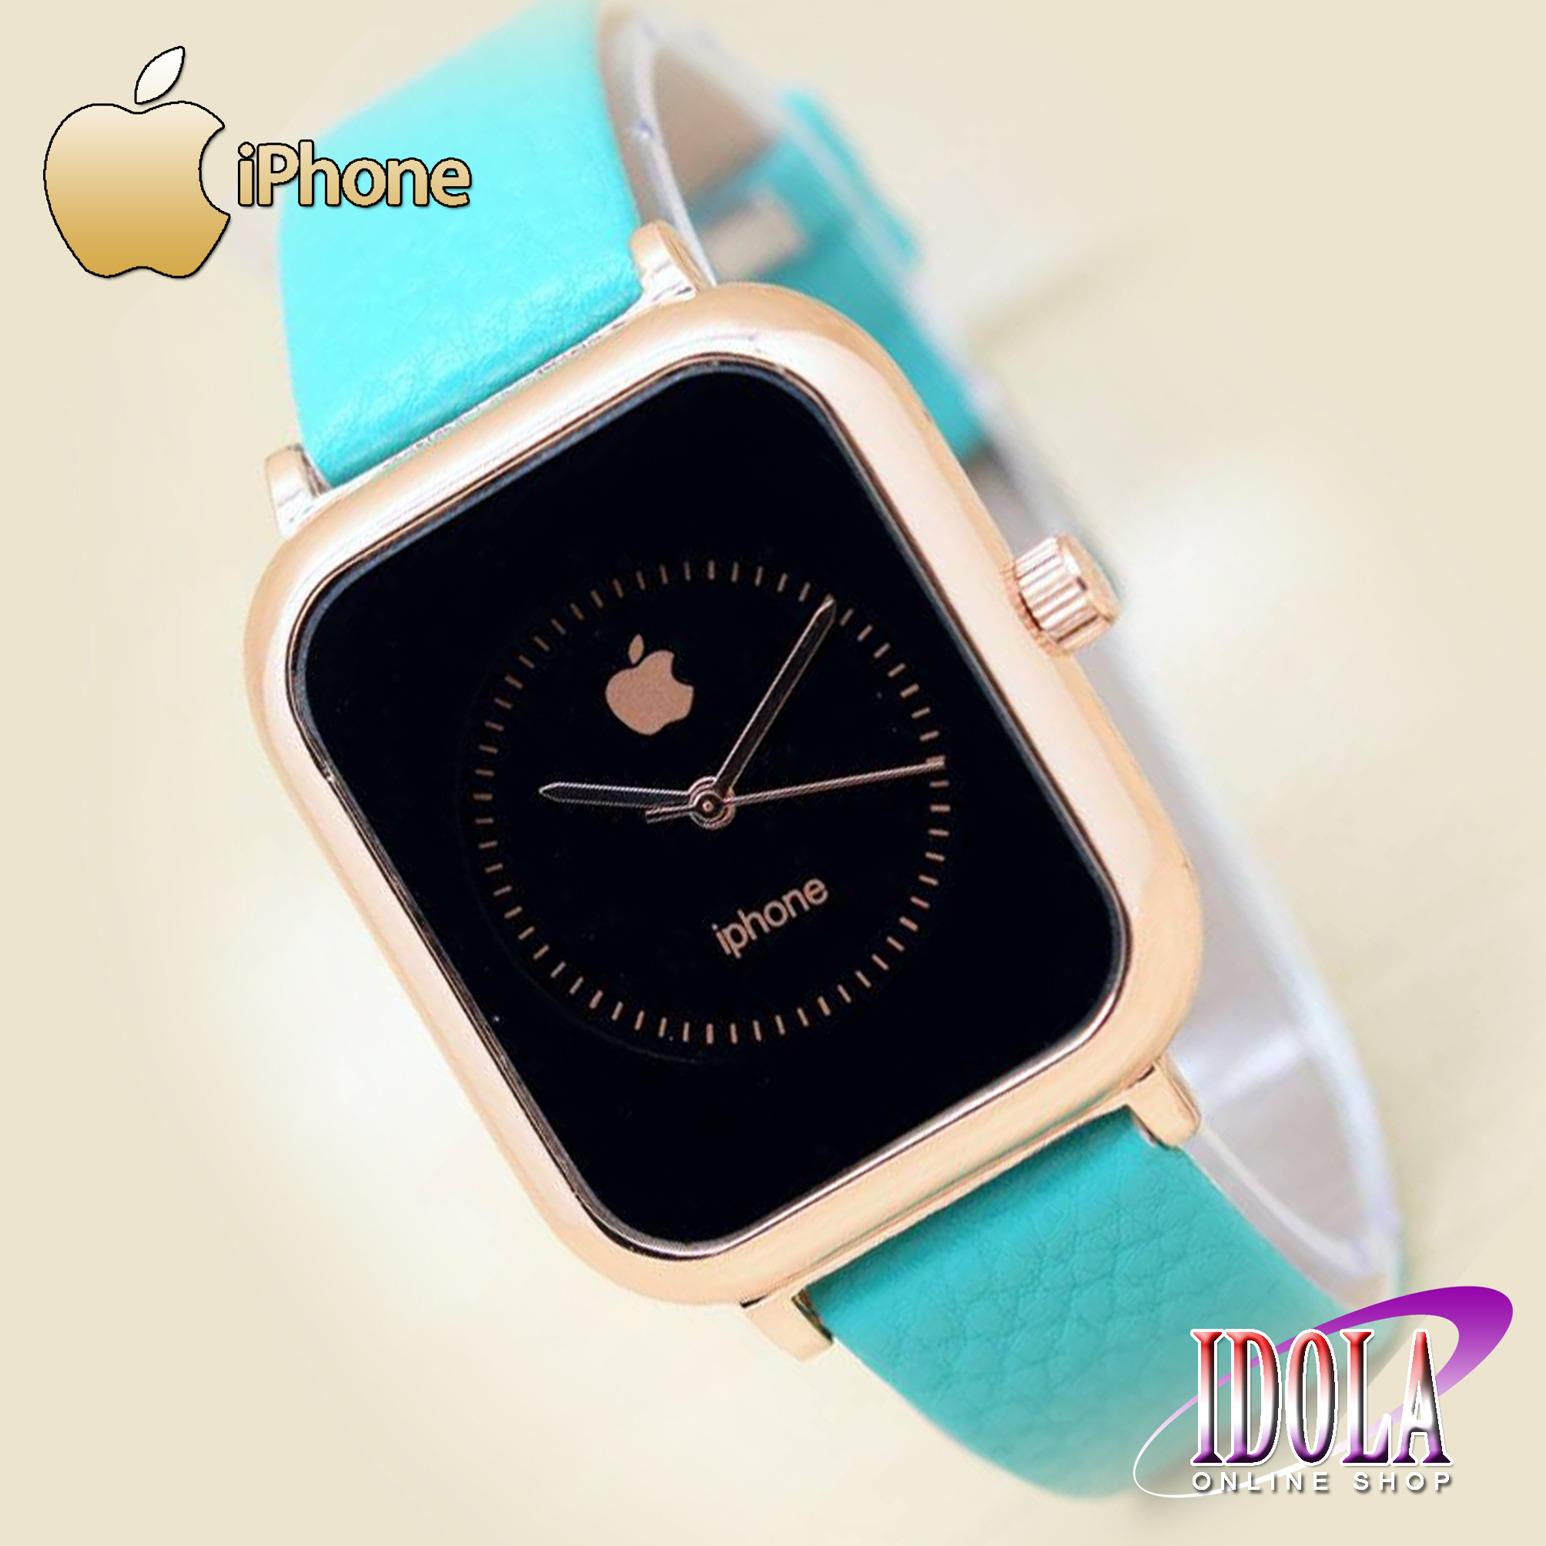 ... Review of Jam Tangan IPhone Jam Tangan Wanita Tali Kulit Geuine Leather Strap